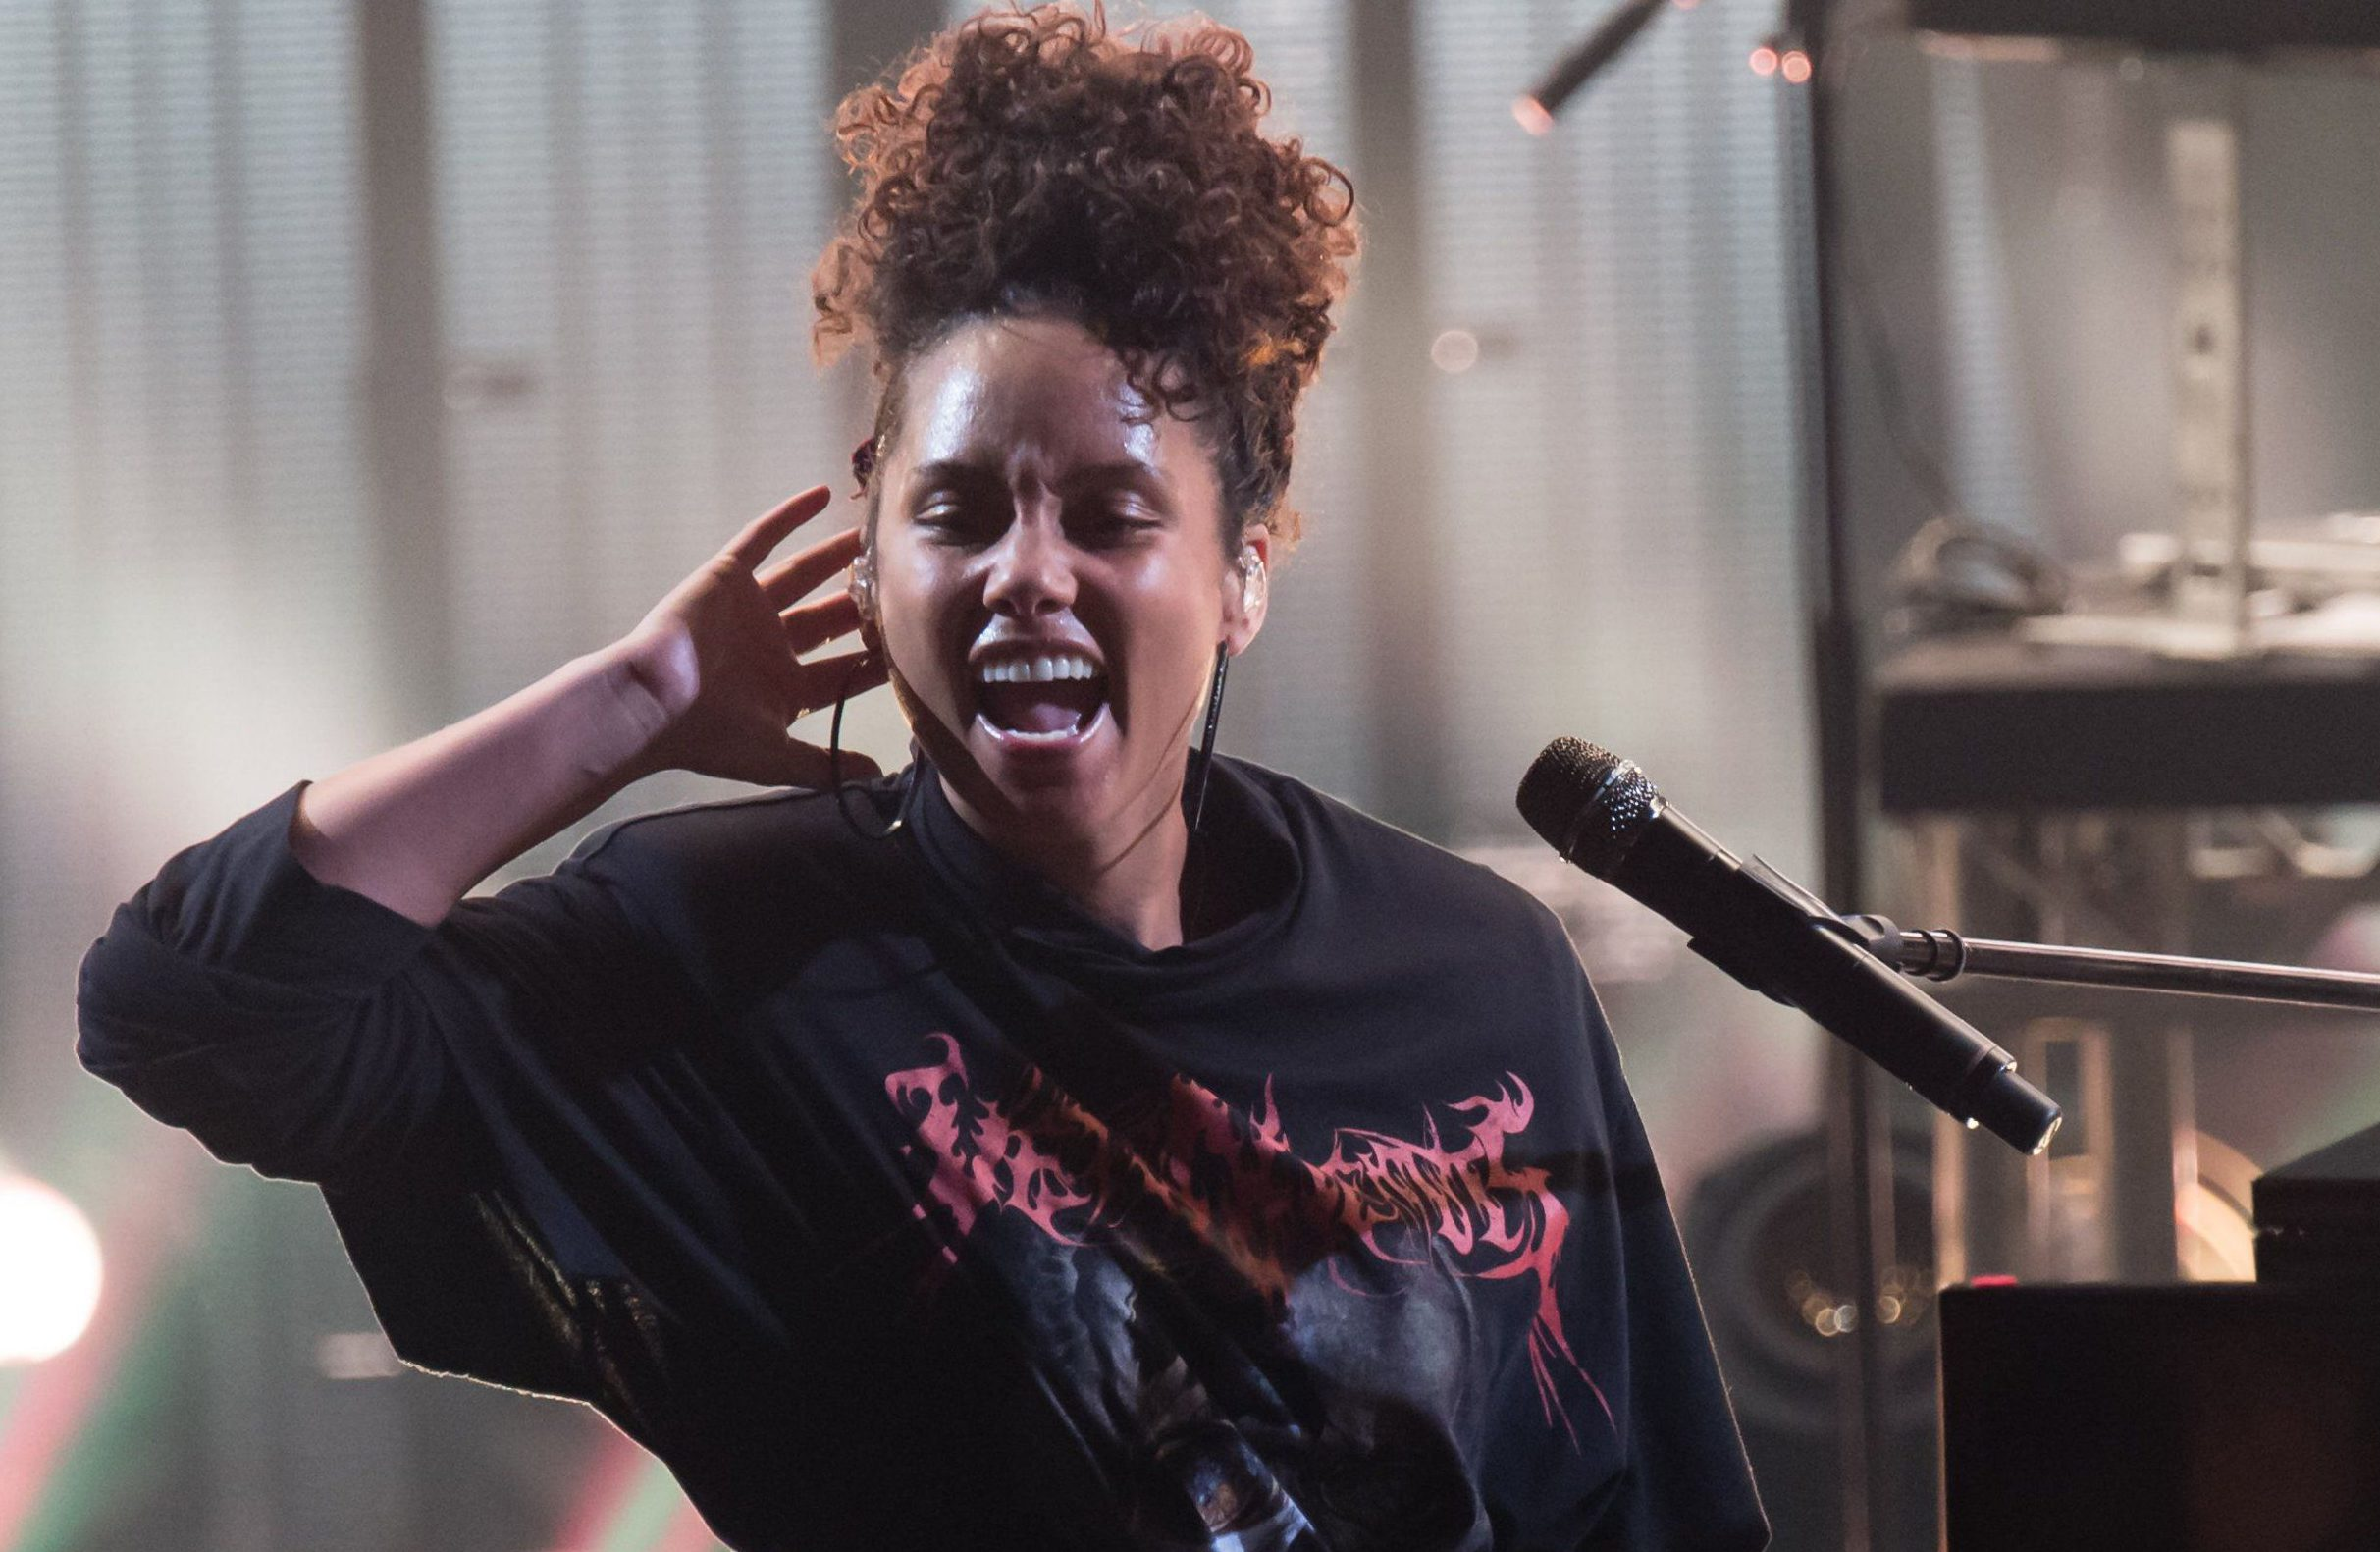 Alicia Keys promises new music very soon: 'It's the most purposeful music I've written'